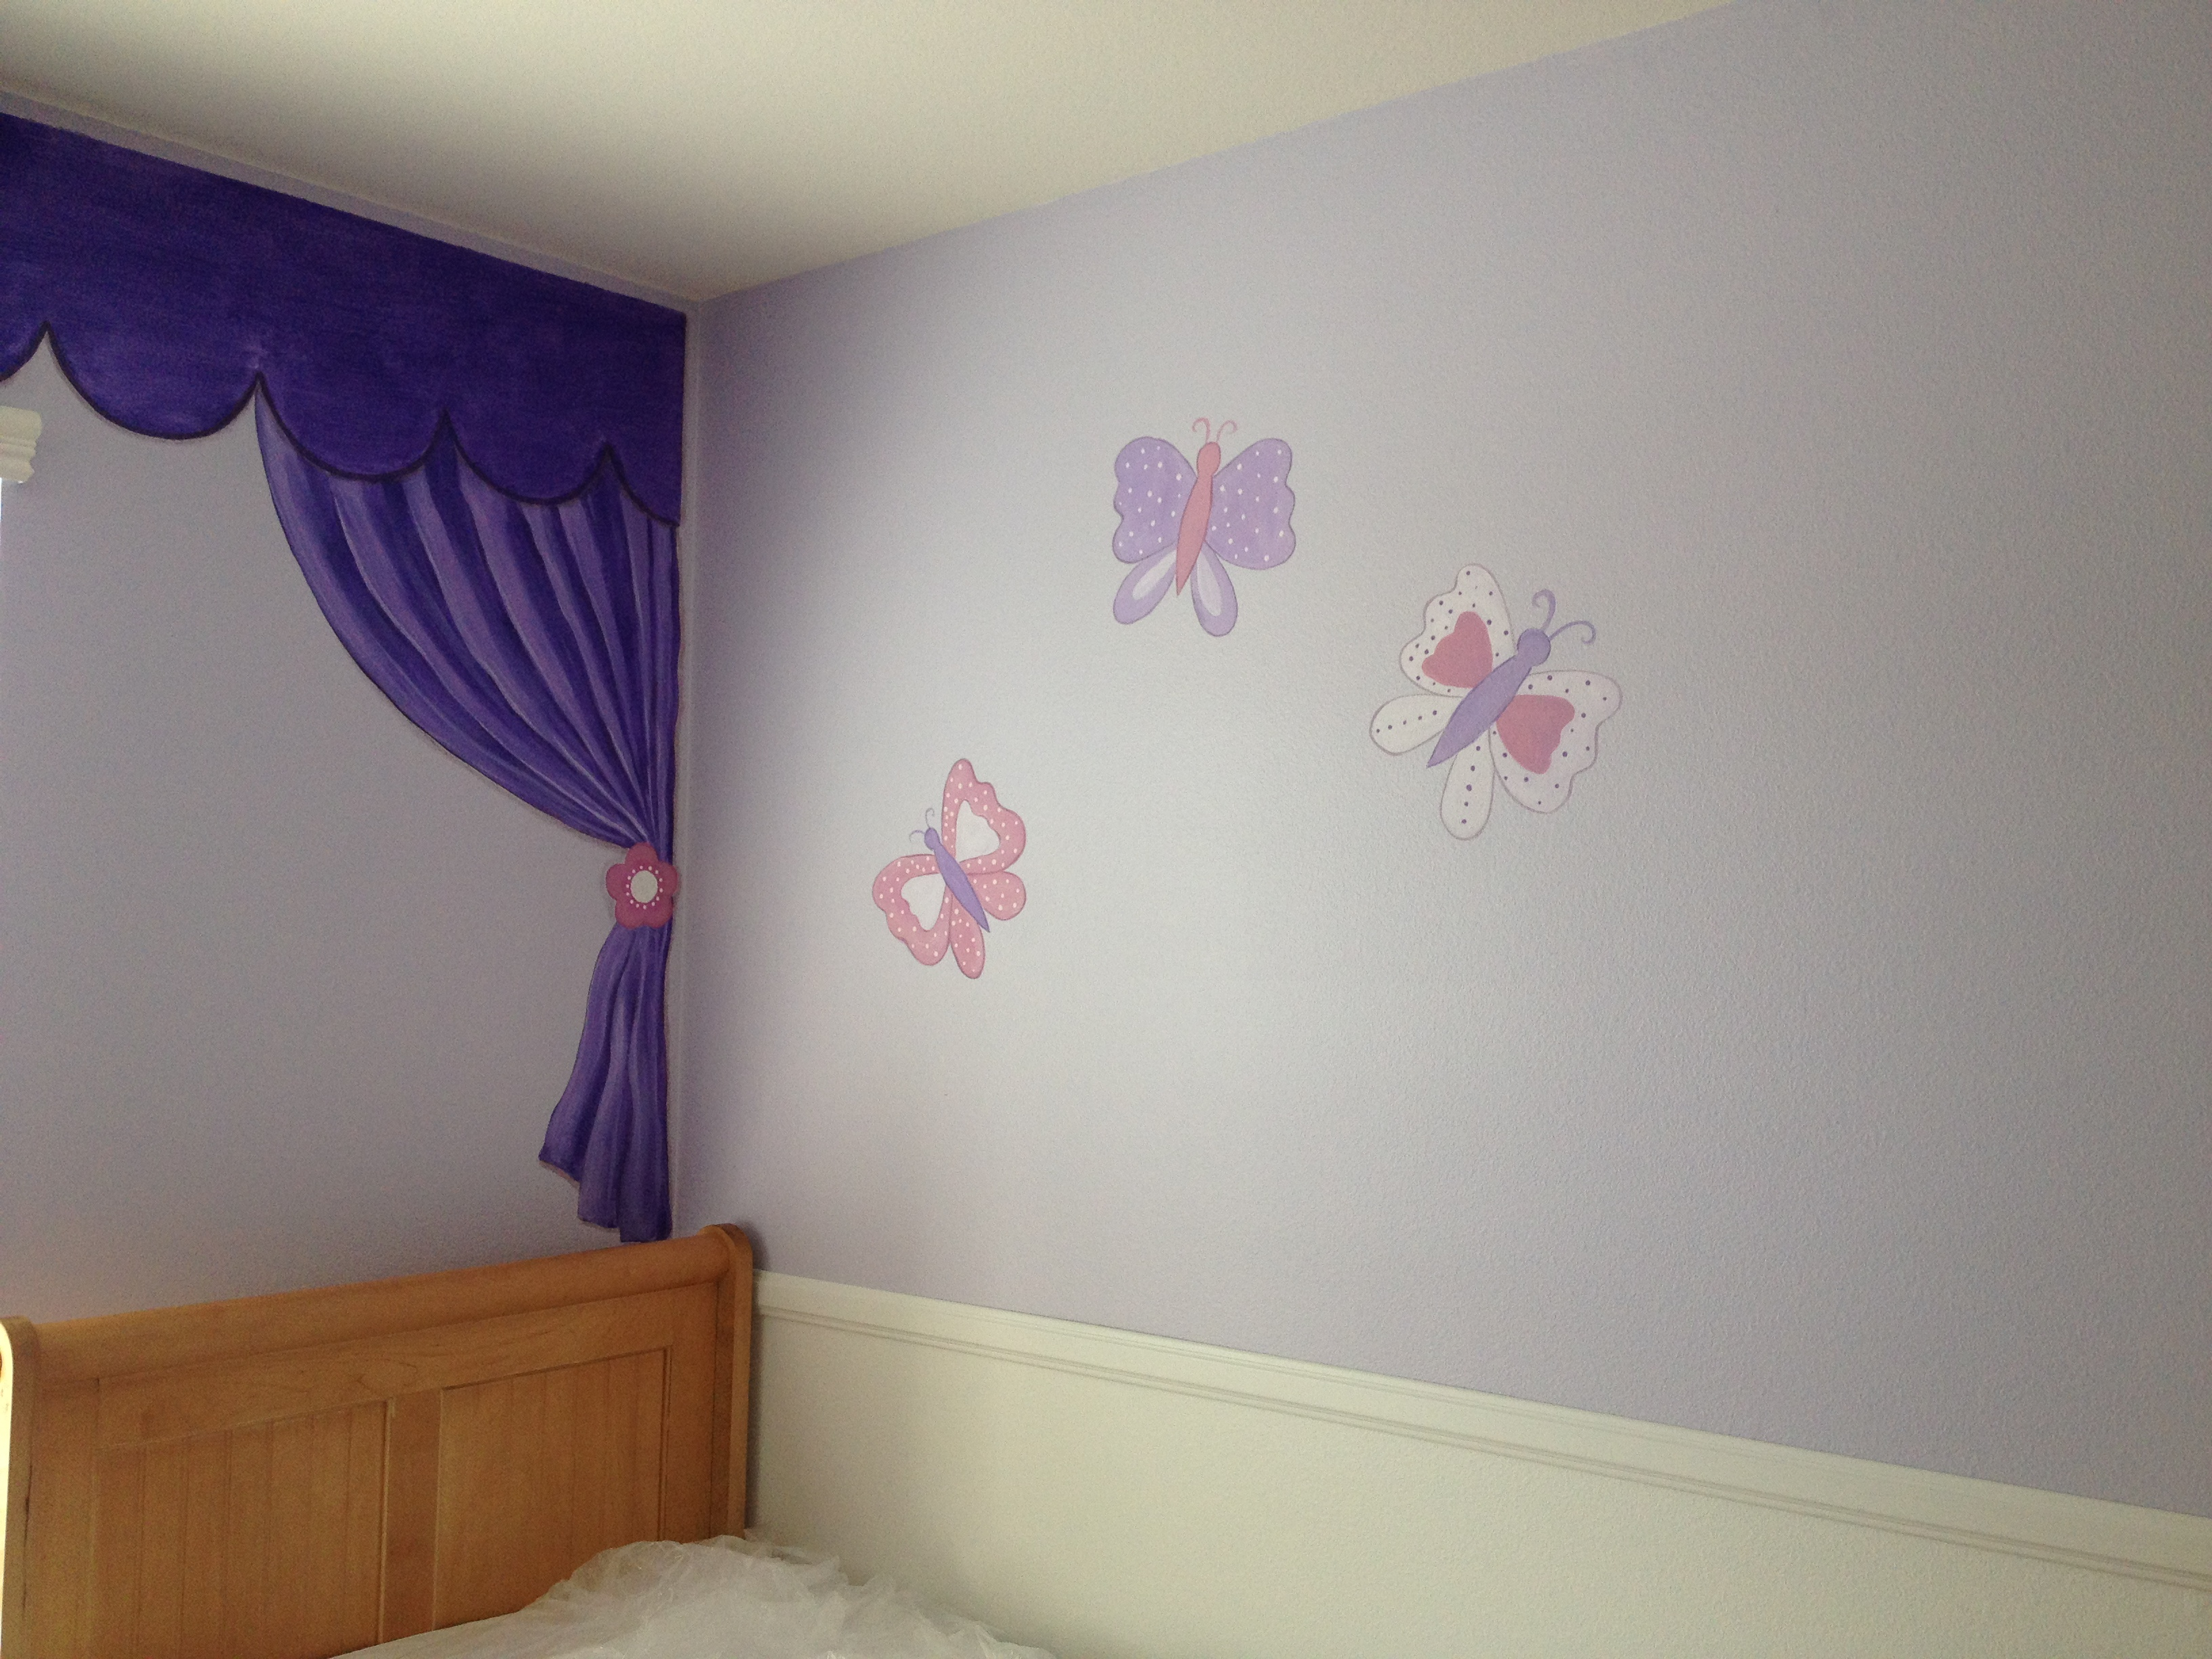 Faux curtains & butterflies